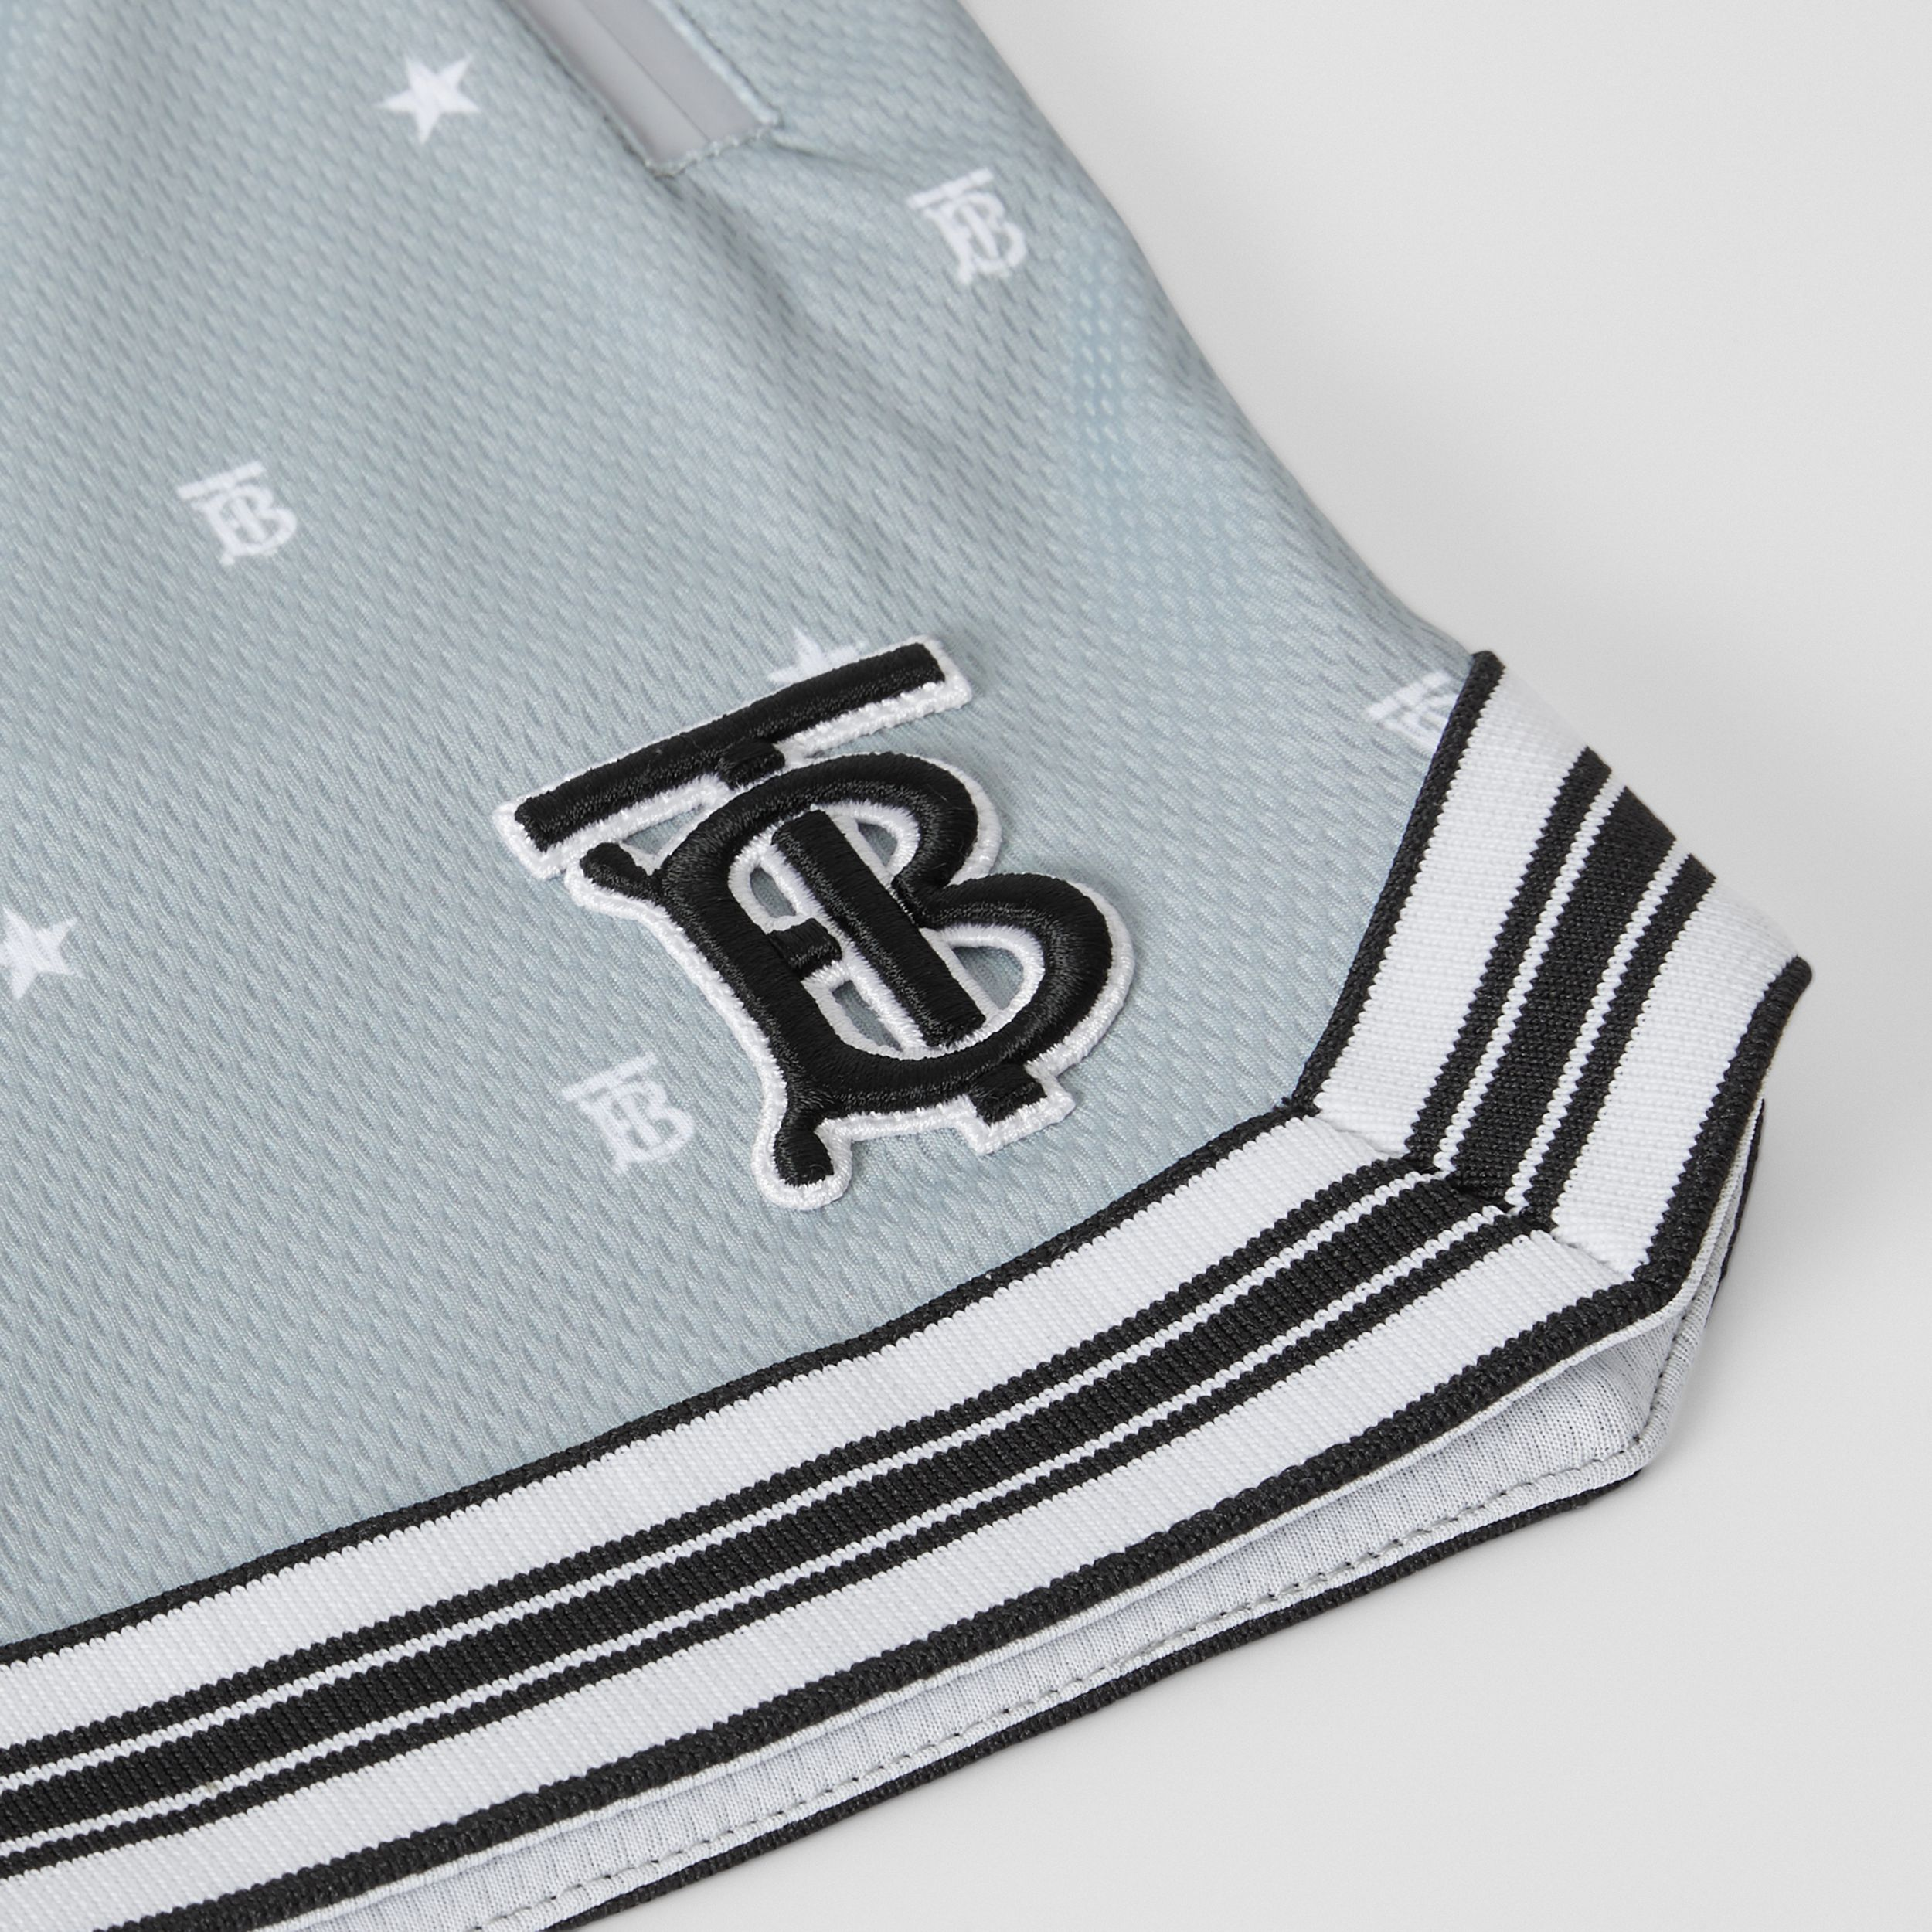 Star and Monogram Motif Jersey Mesh Shorts in Light Grey | Burberry - 2